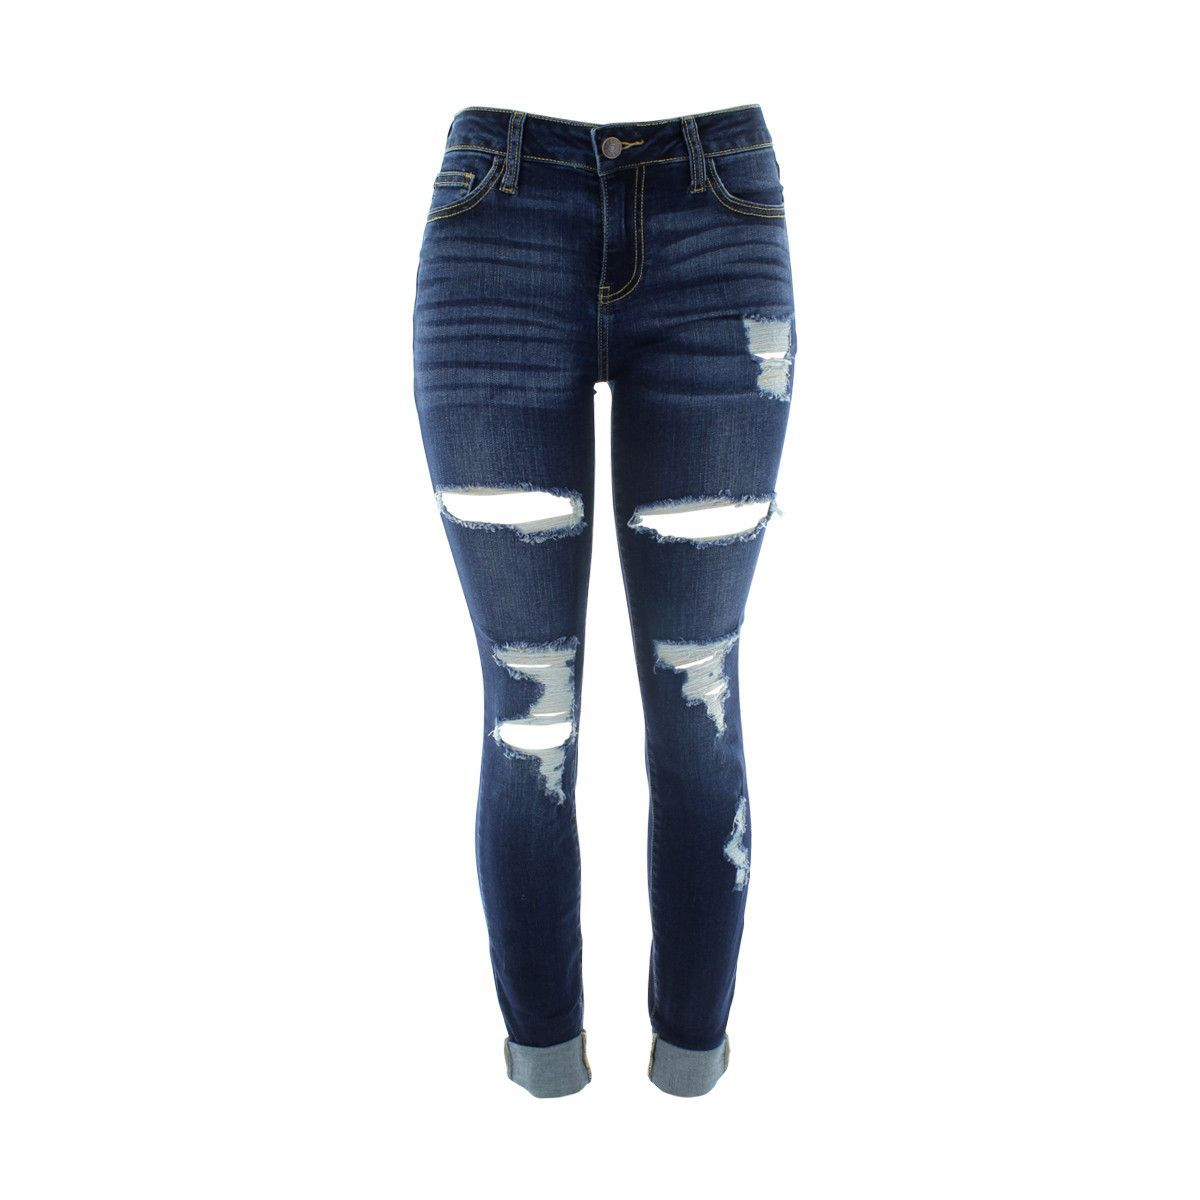 Cello Jeans - Women's Rips Holes Midrise Roll Cuff Skinny Jeans - Dark Blue